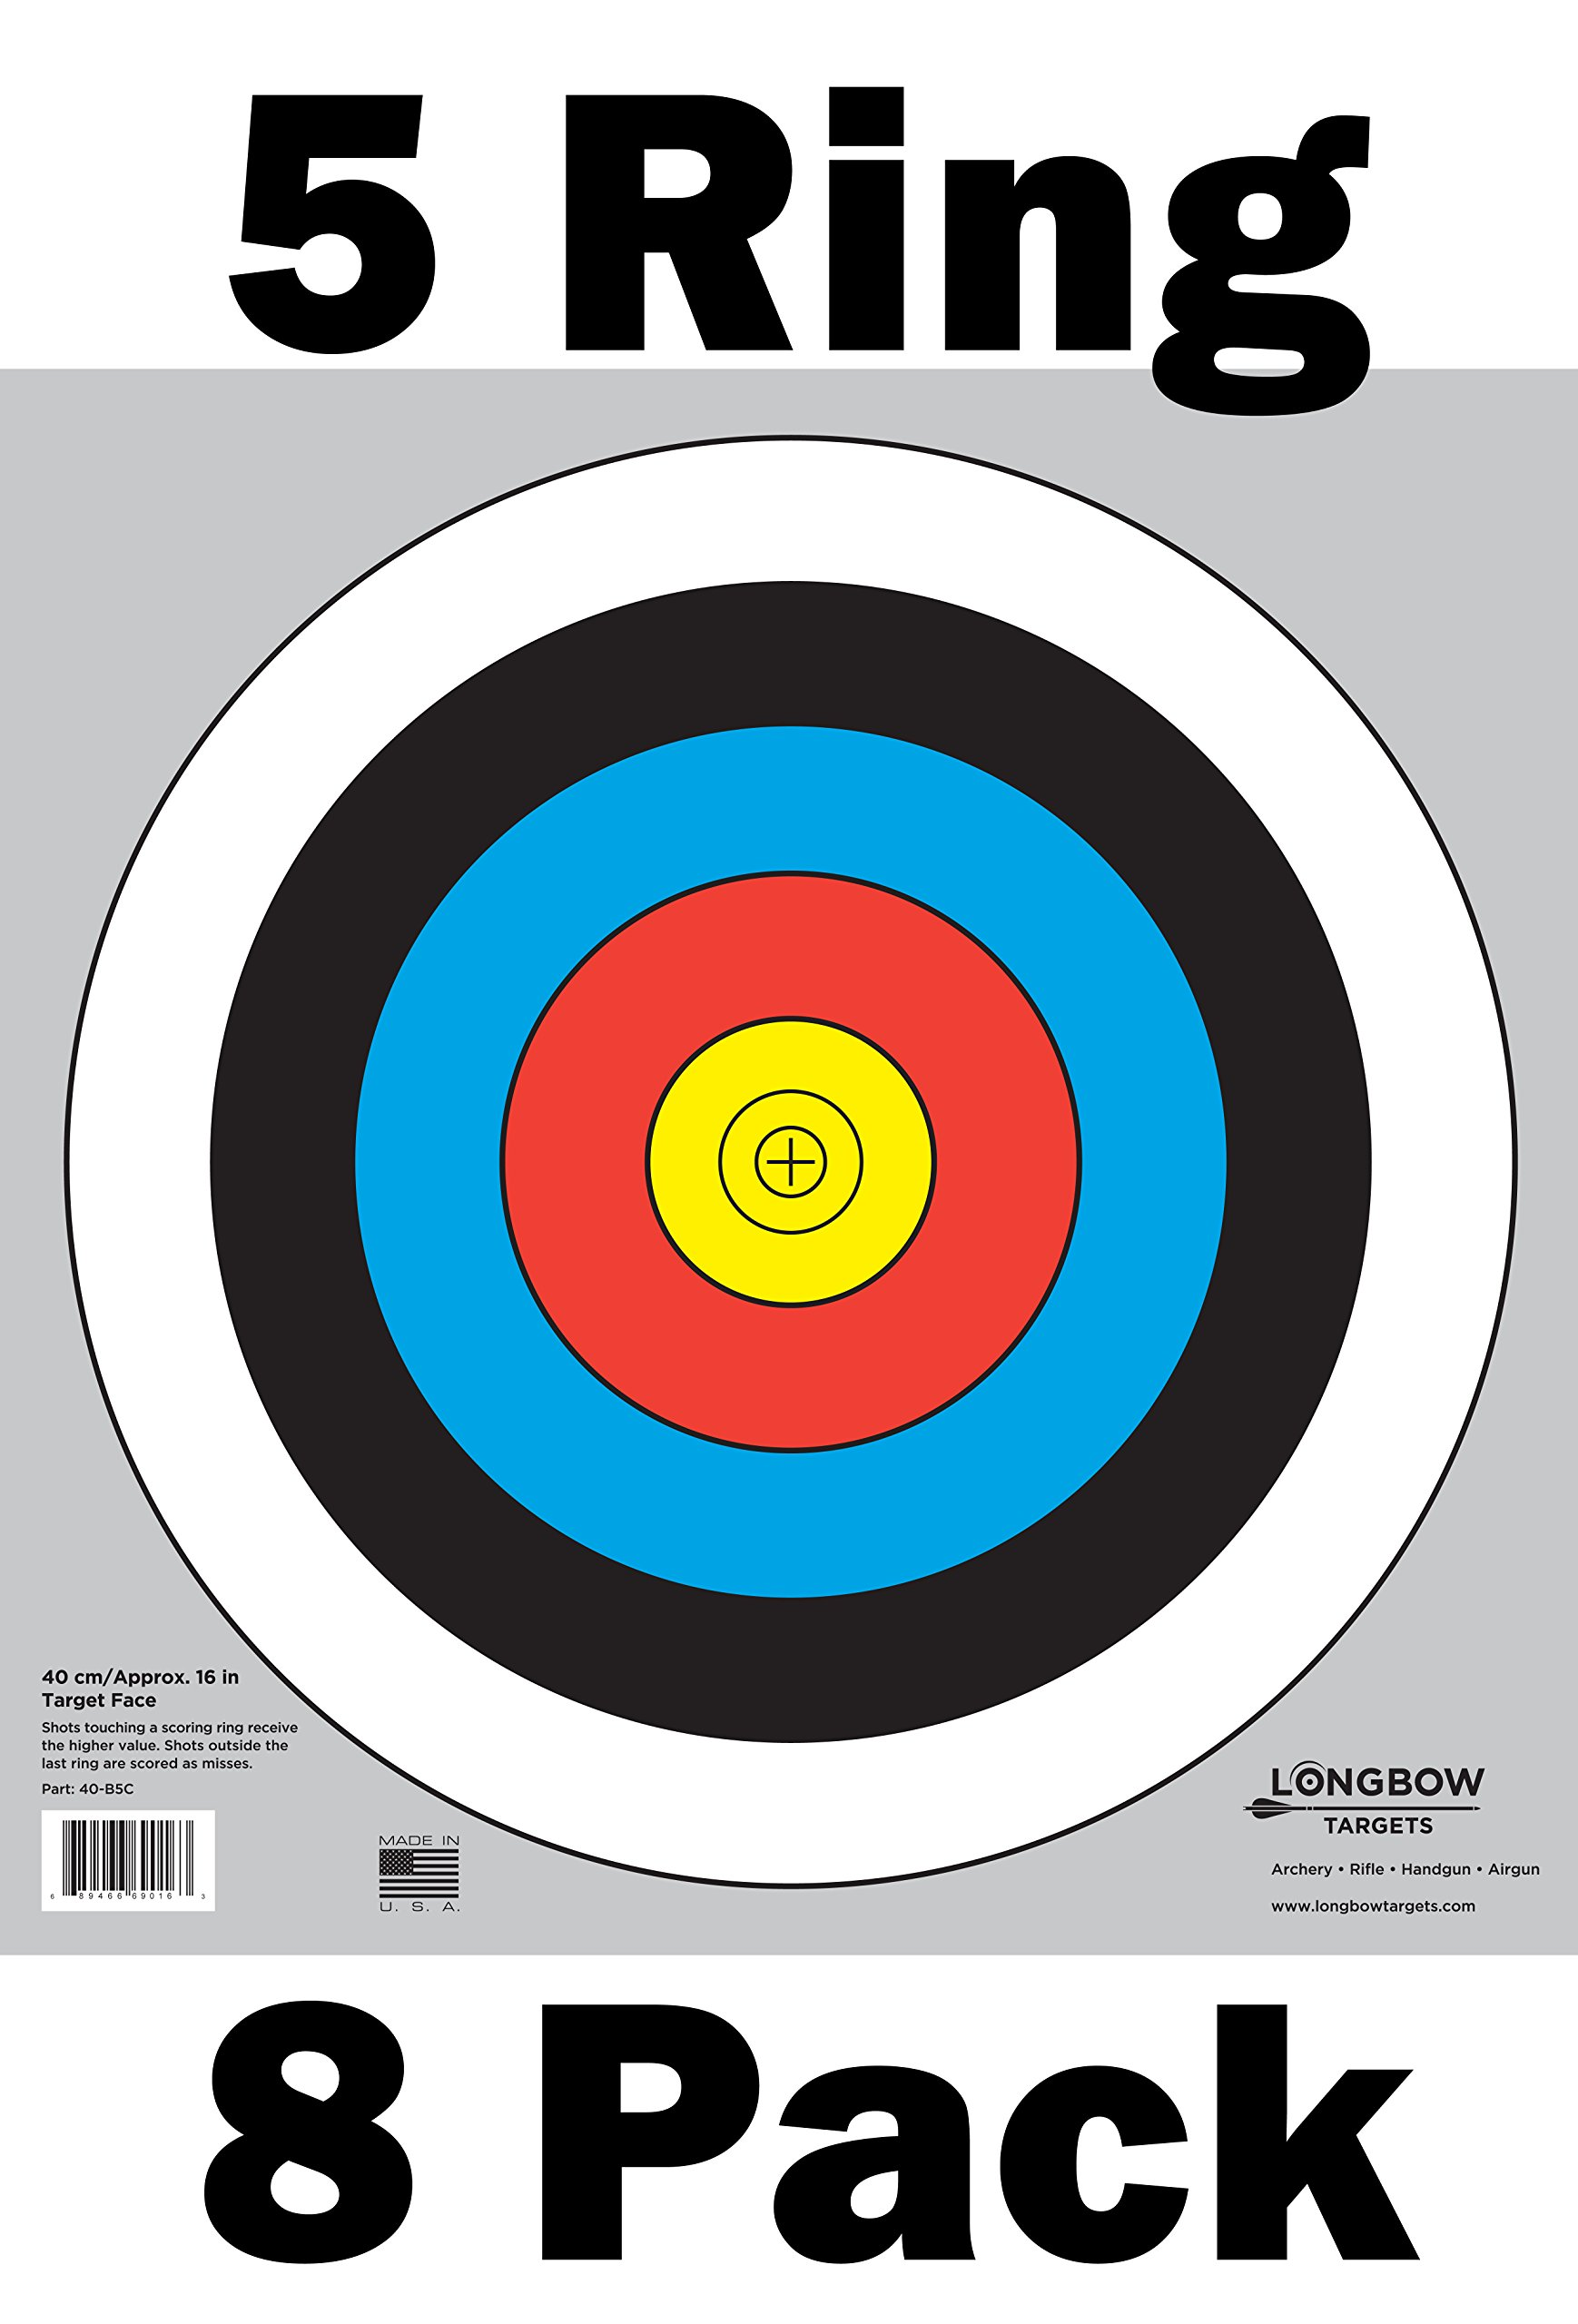 Archery 40cm & 80cm Targets by Longbow (8 Pack, 40cm/approx 17'' (5 Ring)) by Longbow Targets